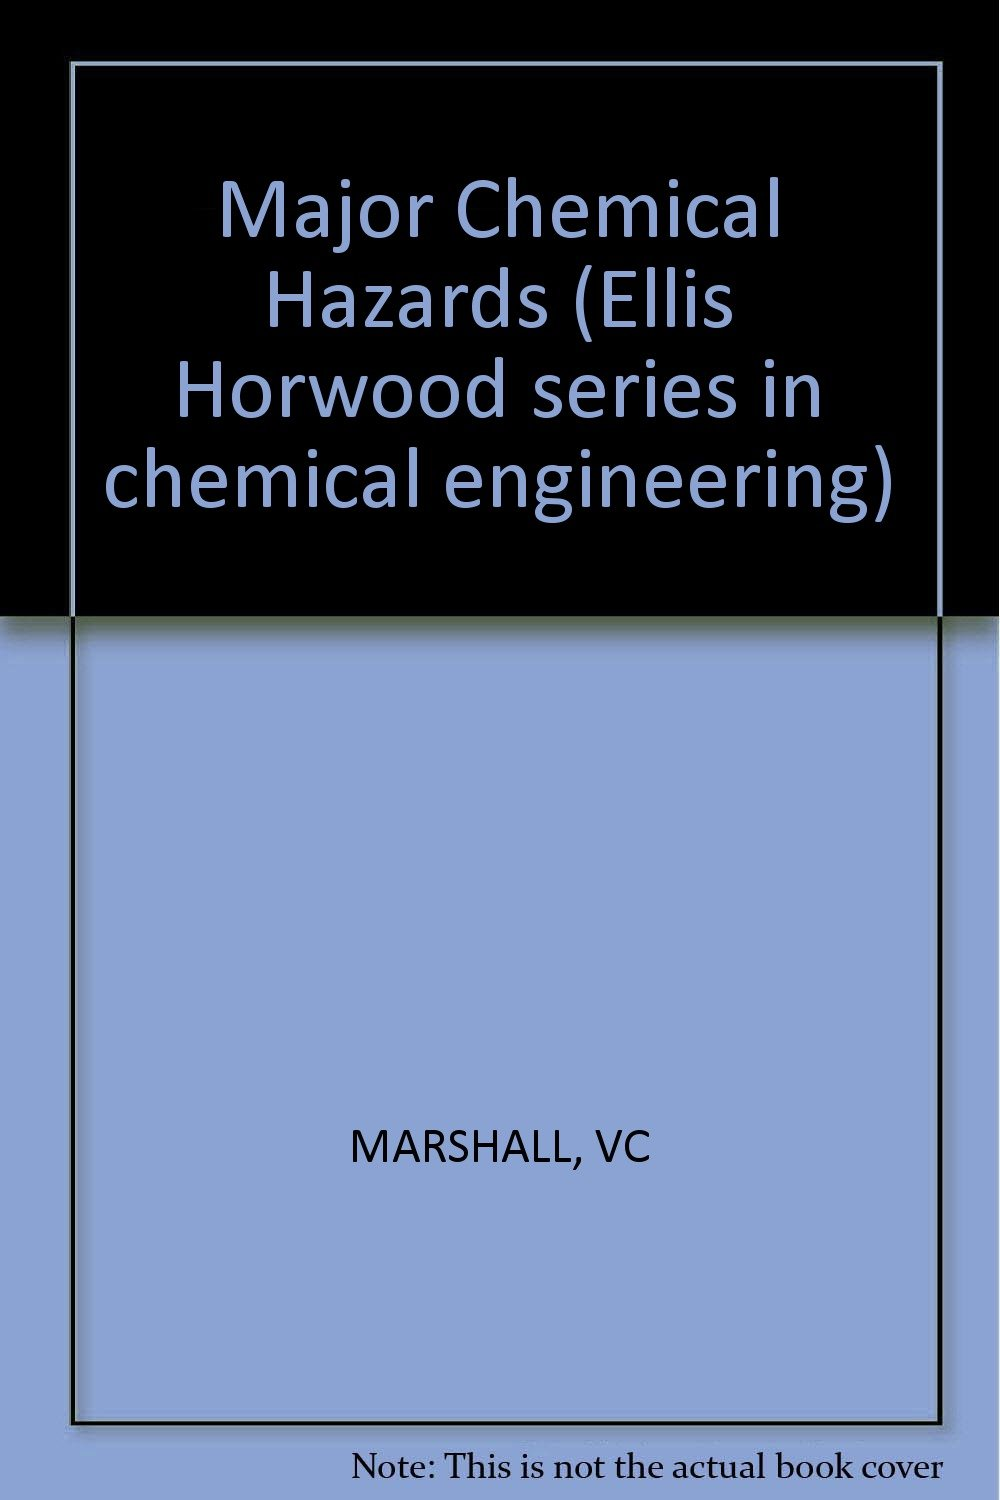 Major chemical hazards (Ellis Horwood series in chemical